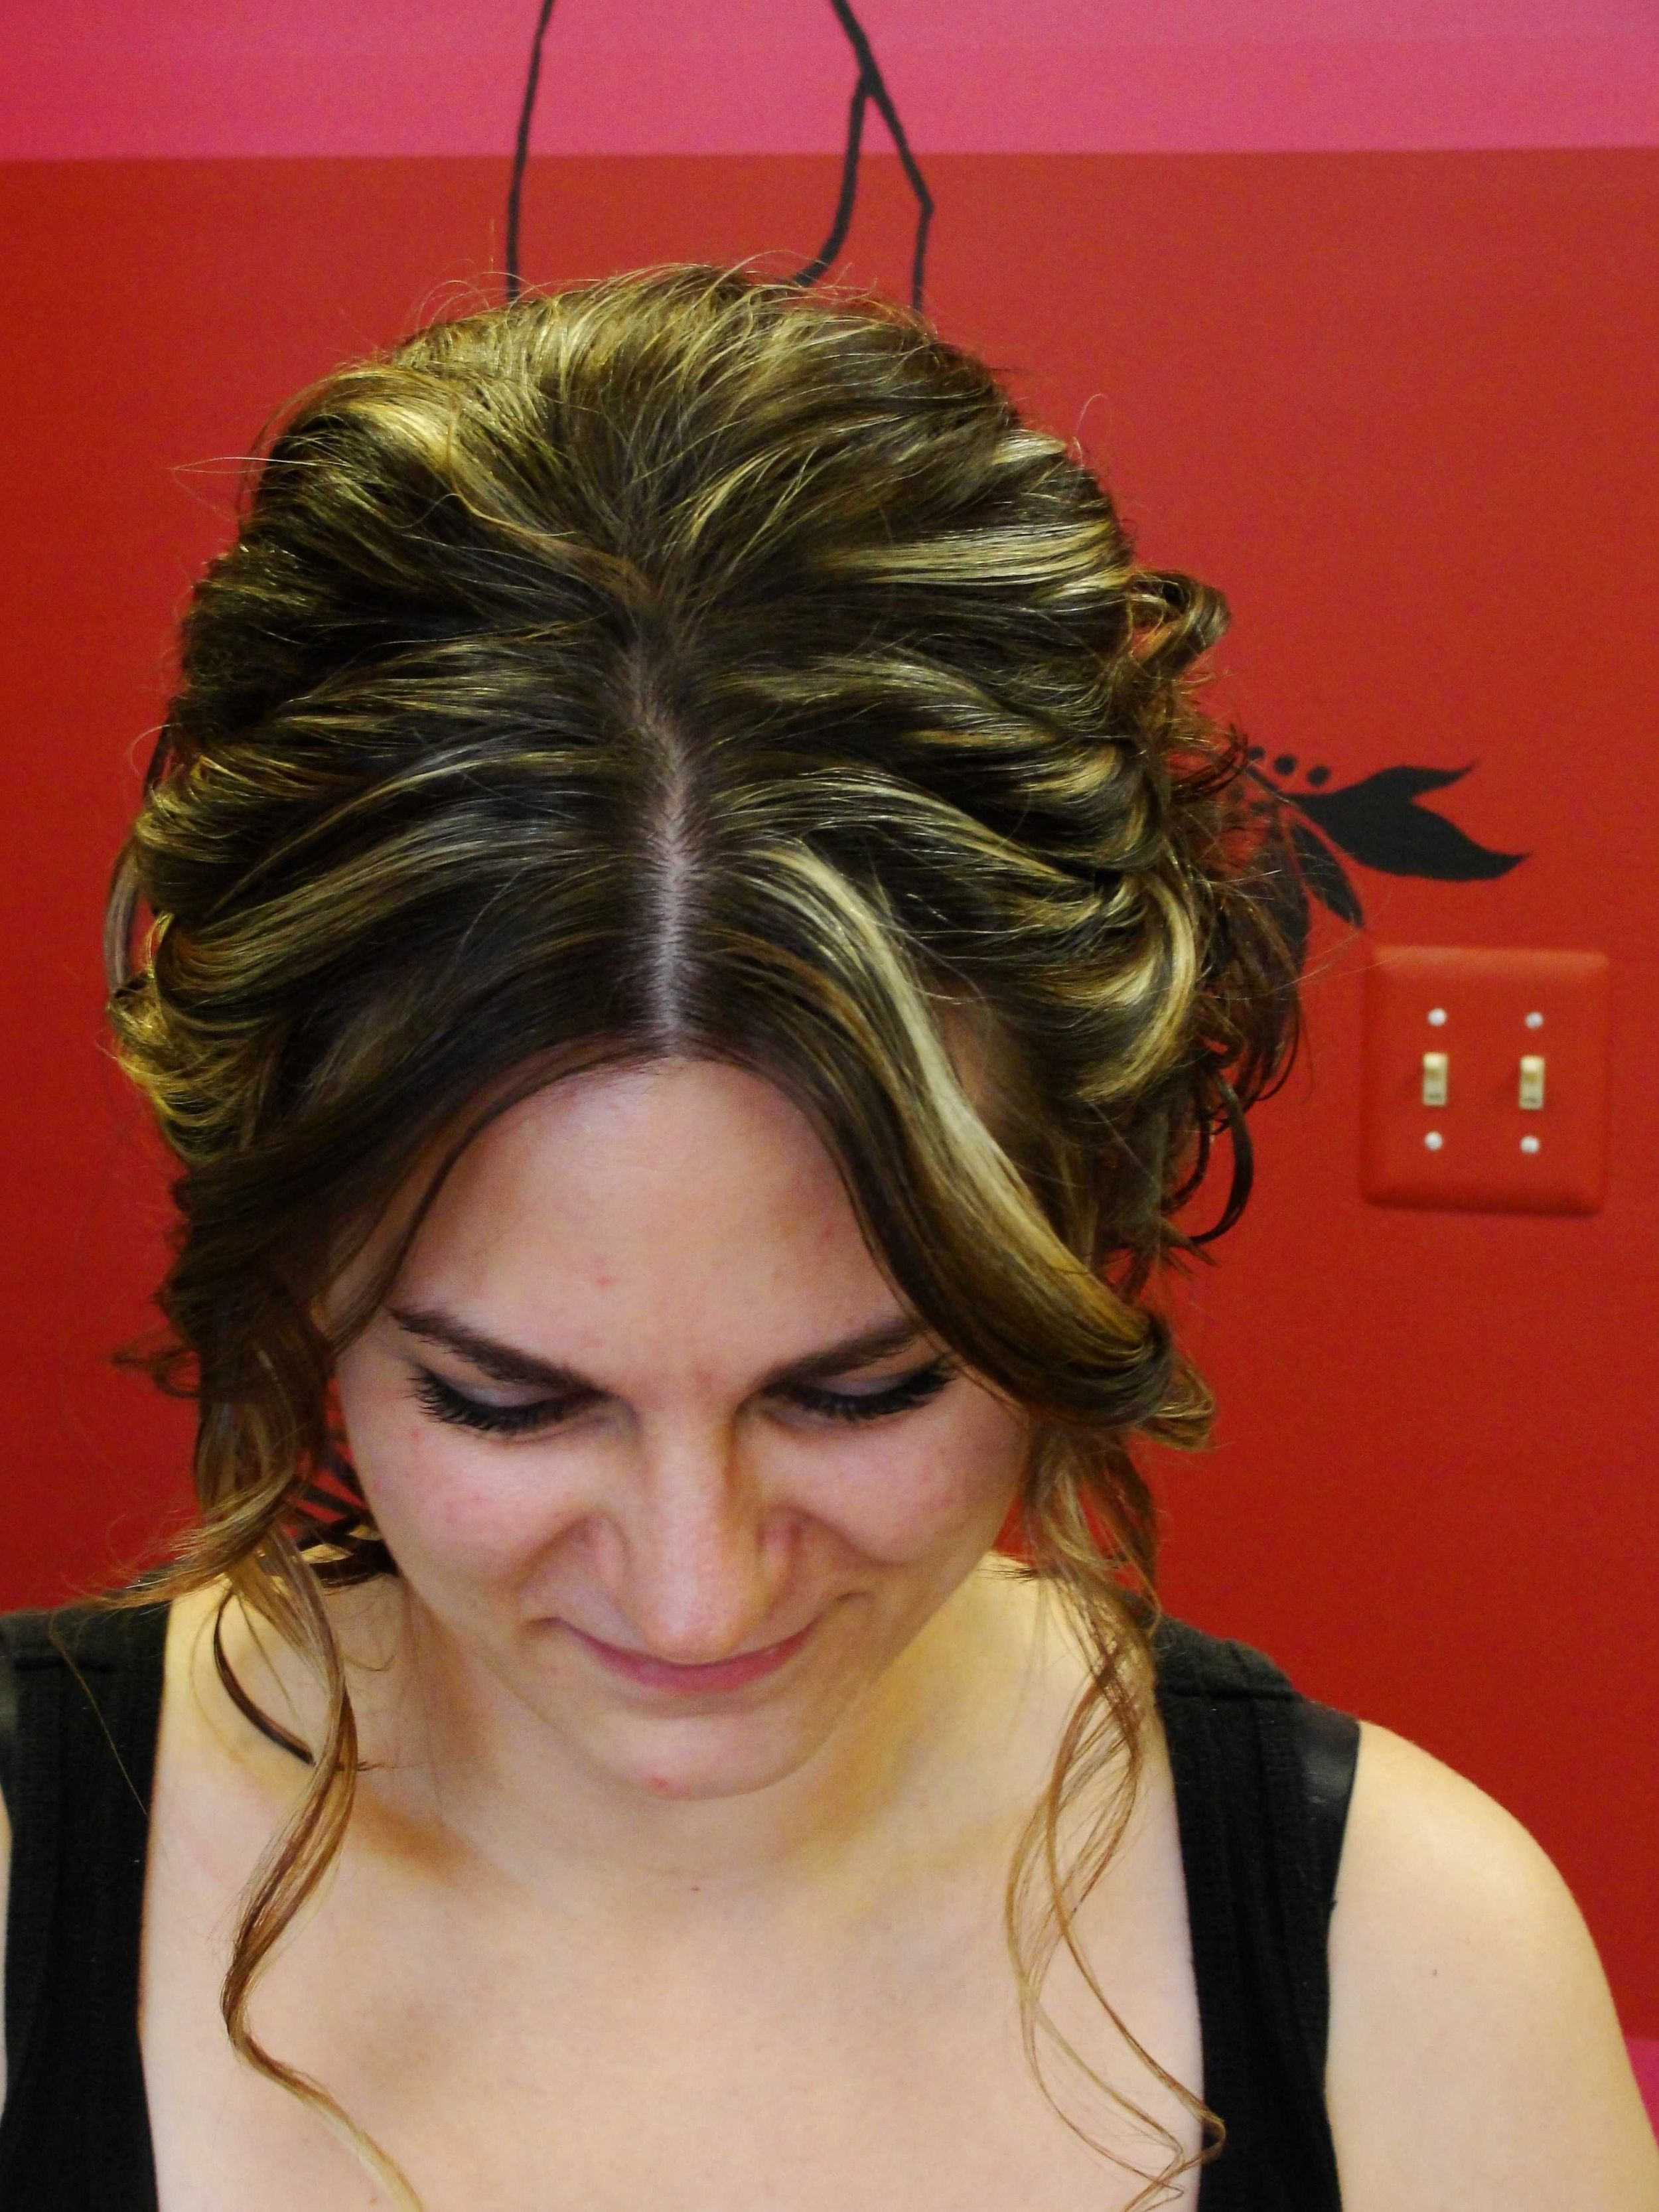 nicole updo crown view.jpg